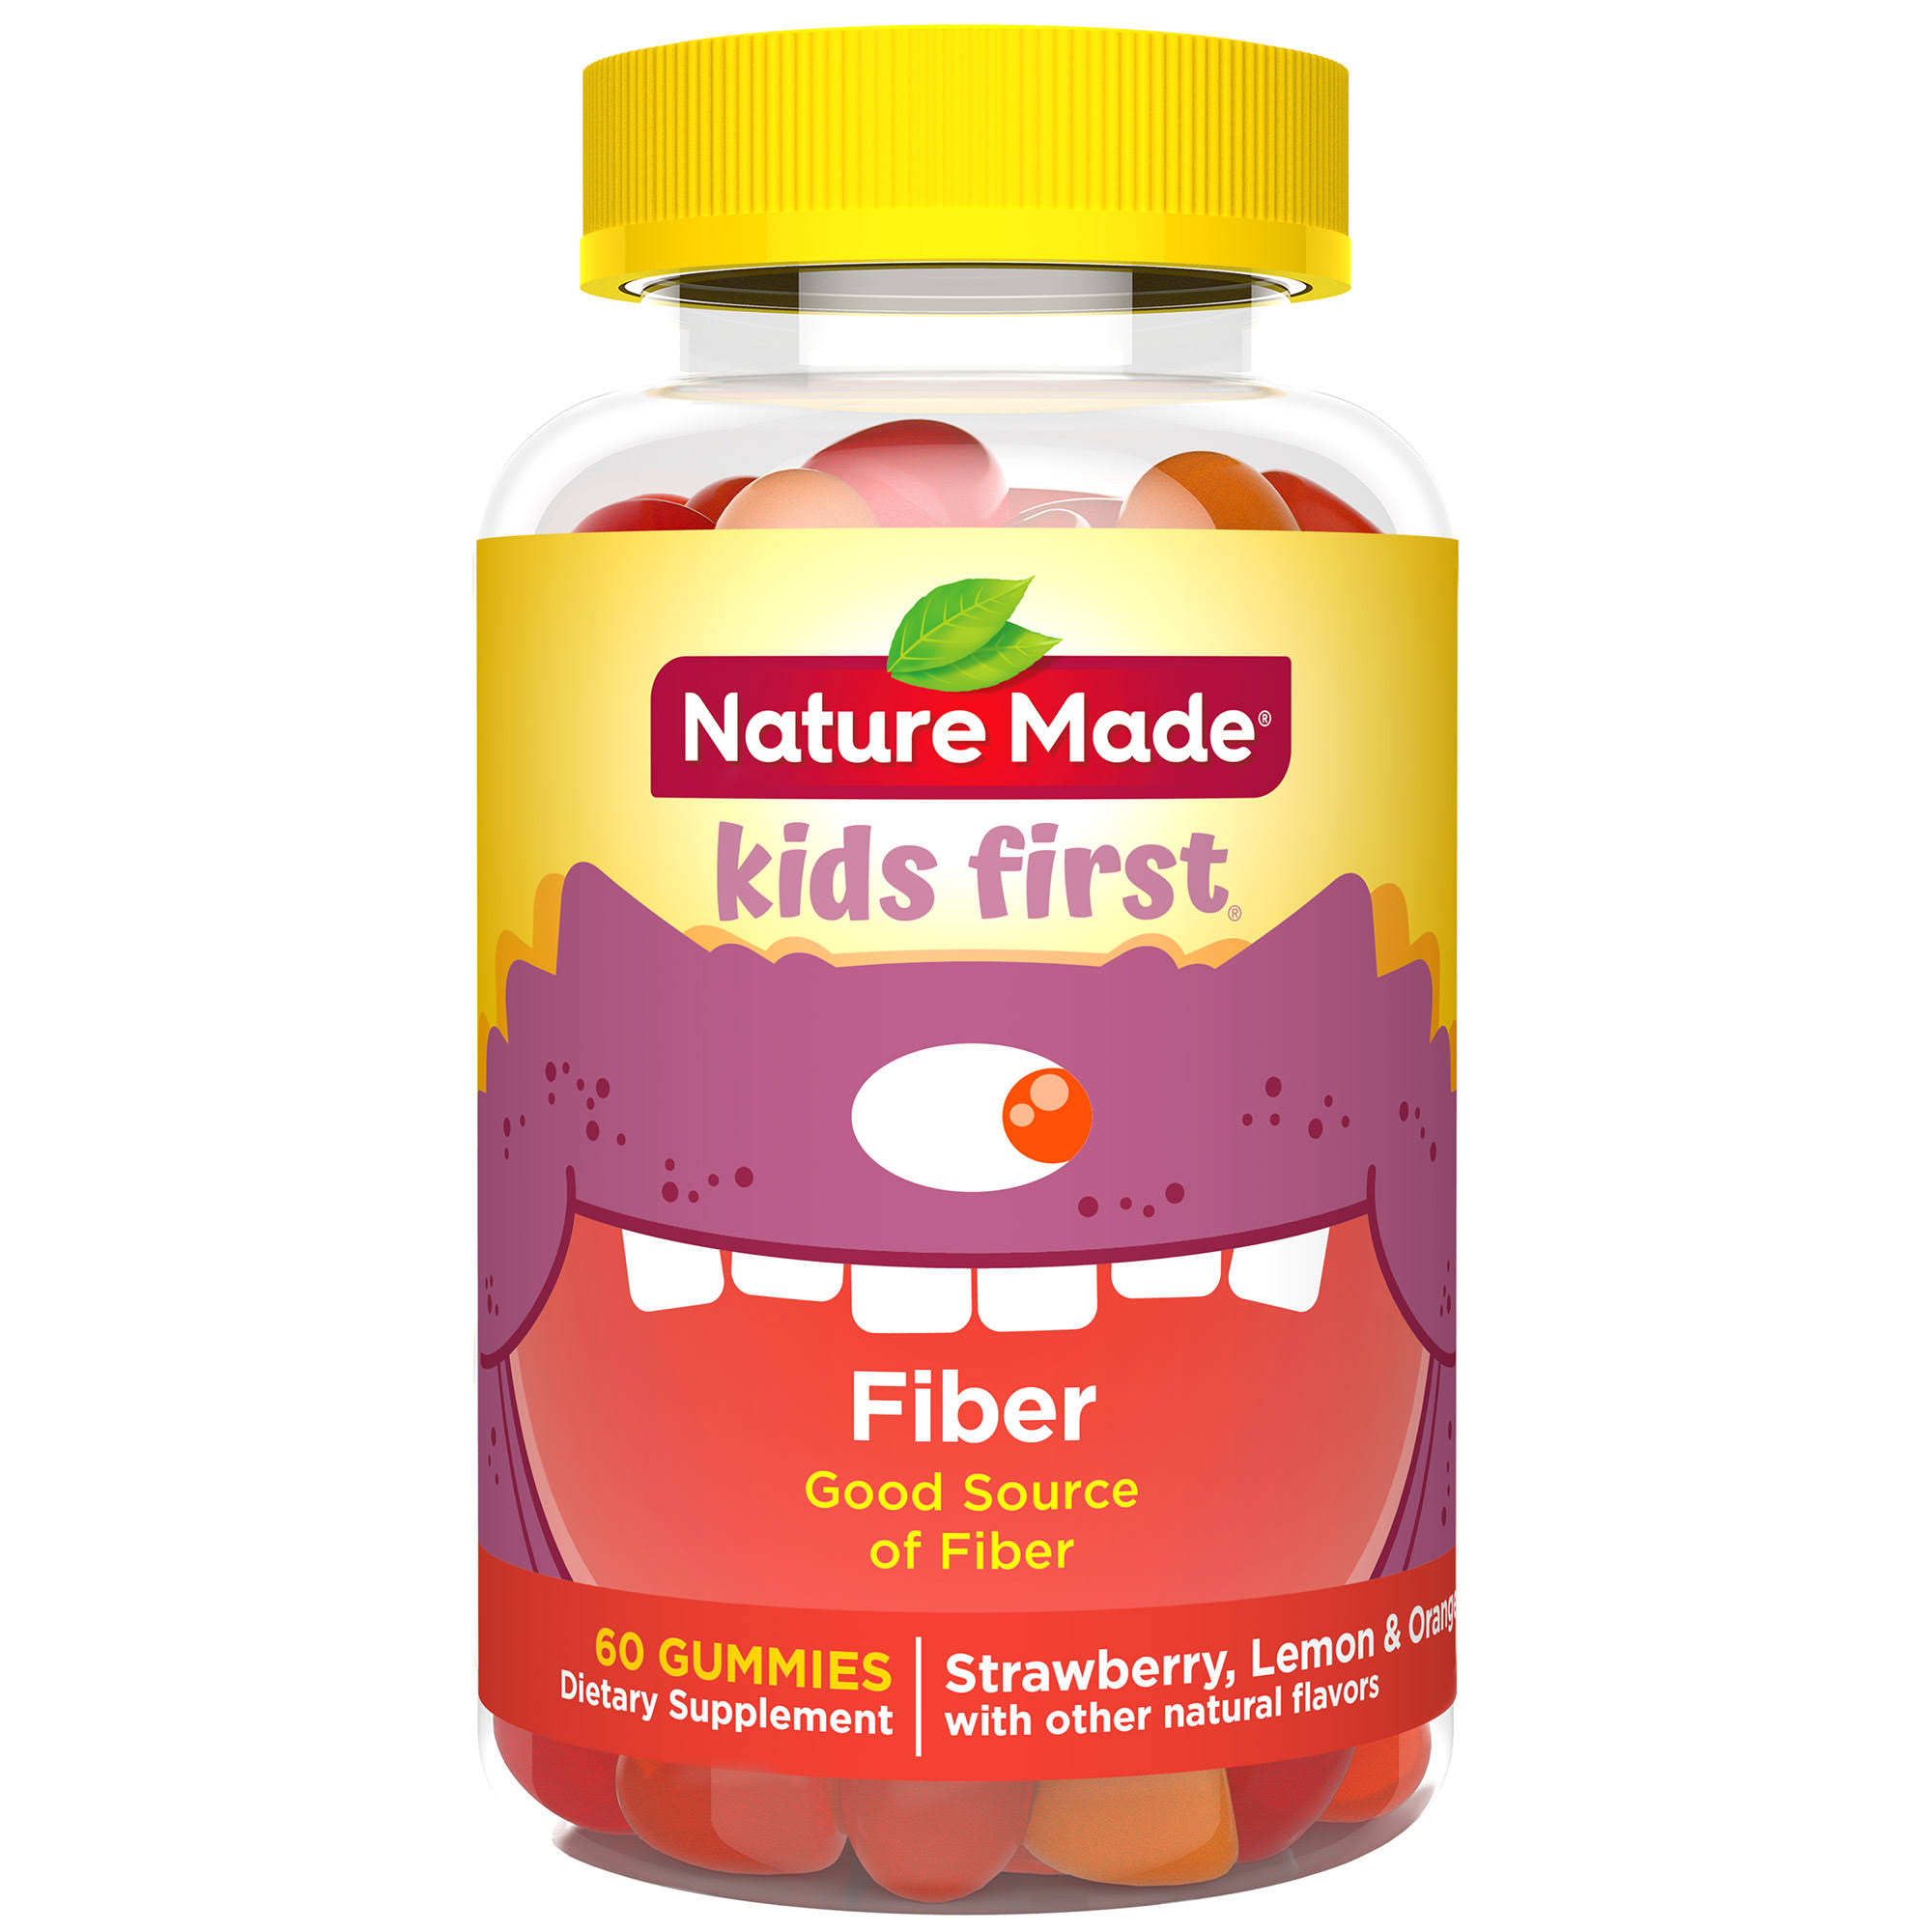 Nature Made Kids First Fiber Gummies Dietary Supplement - 60ct